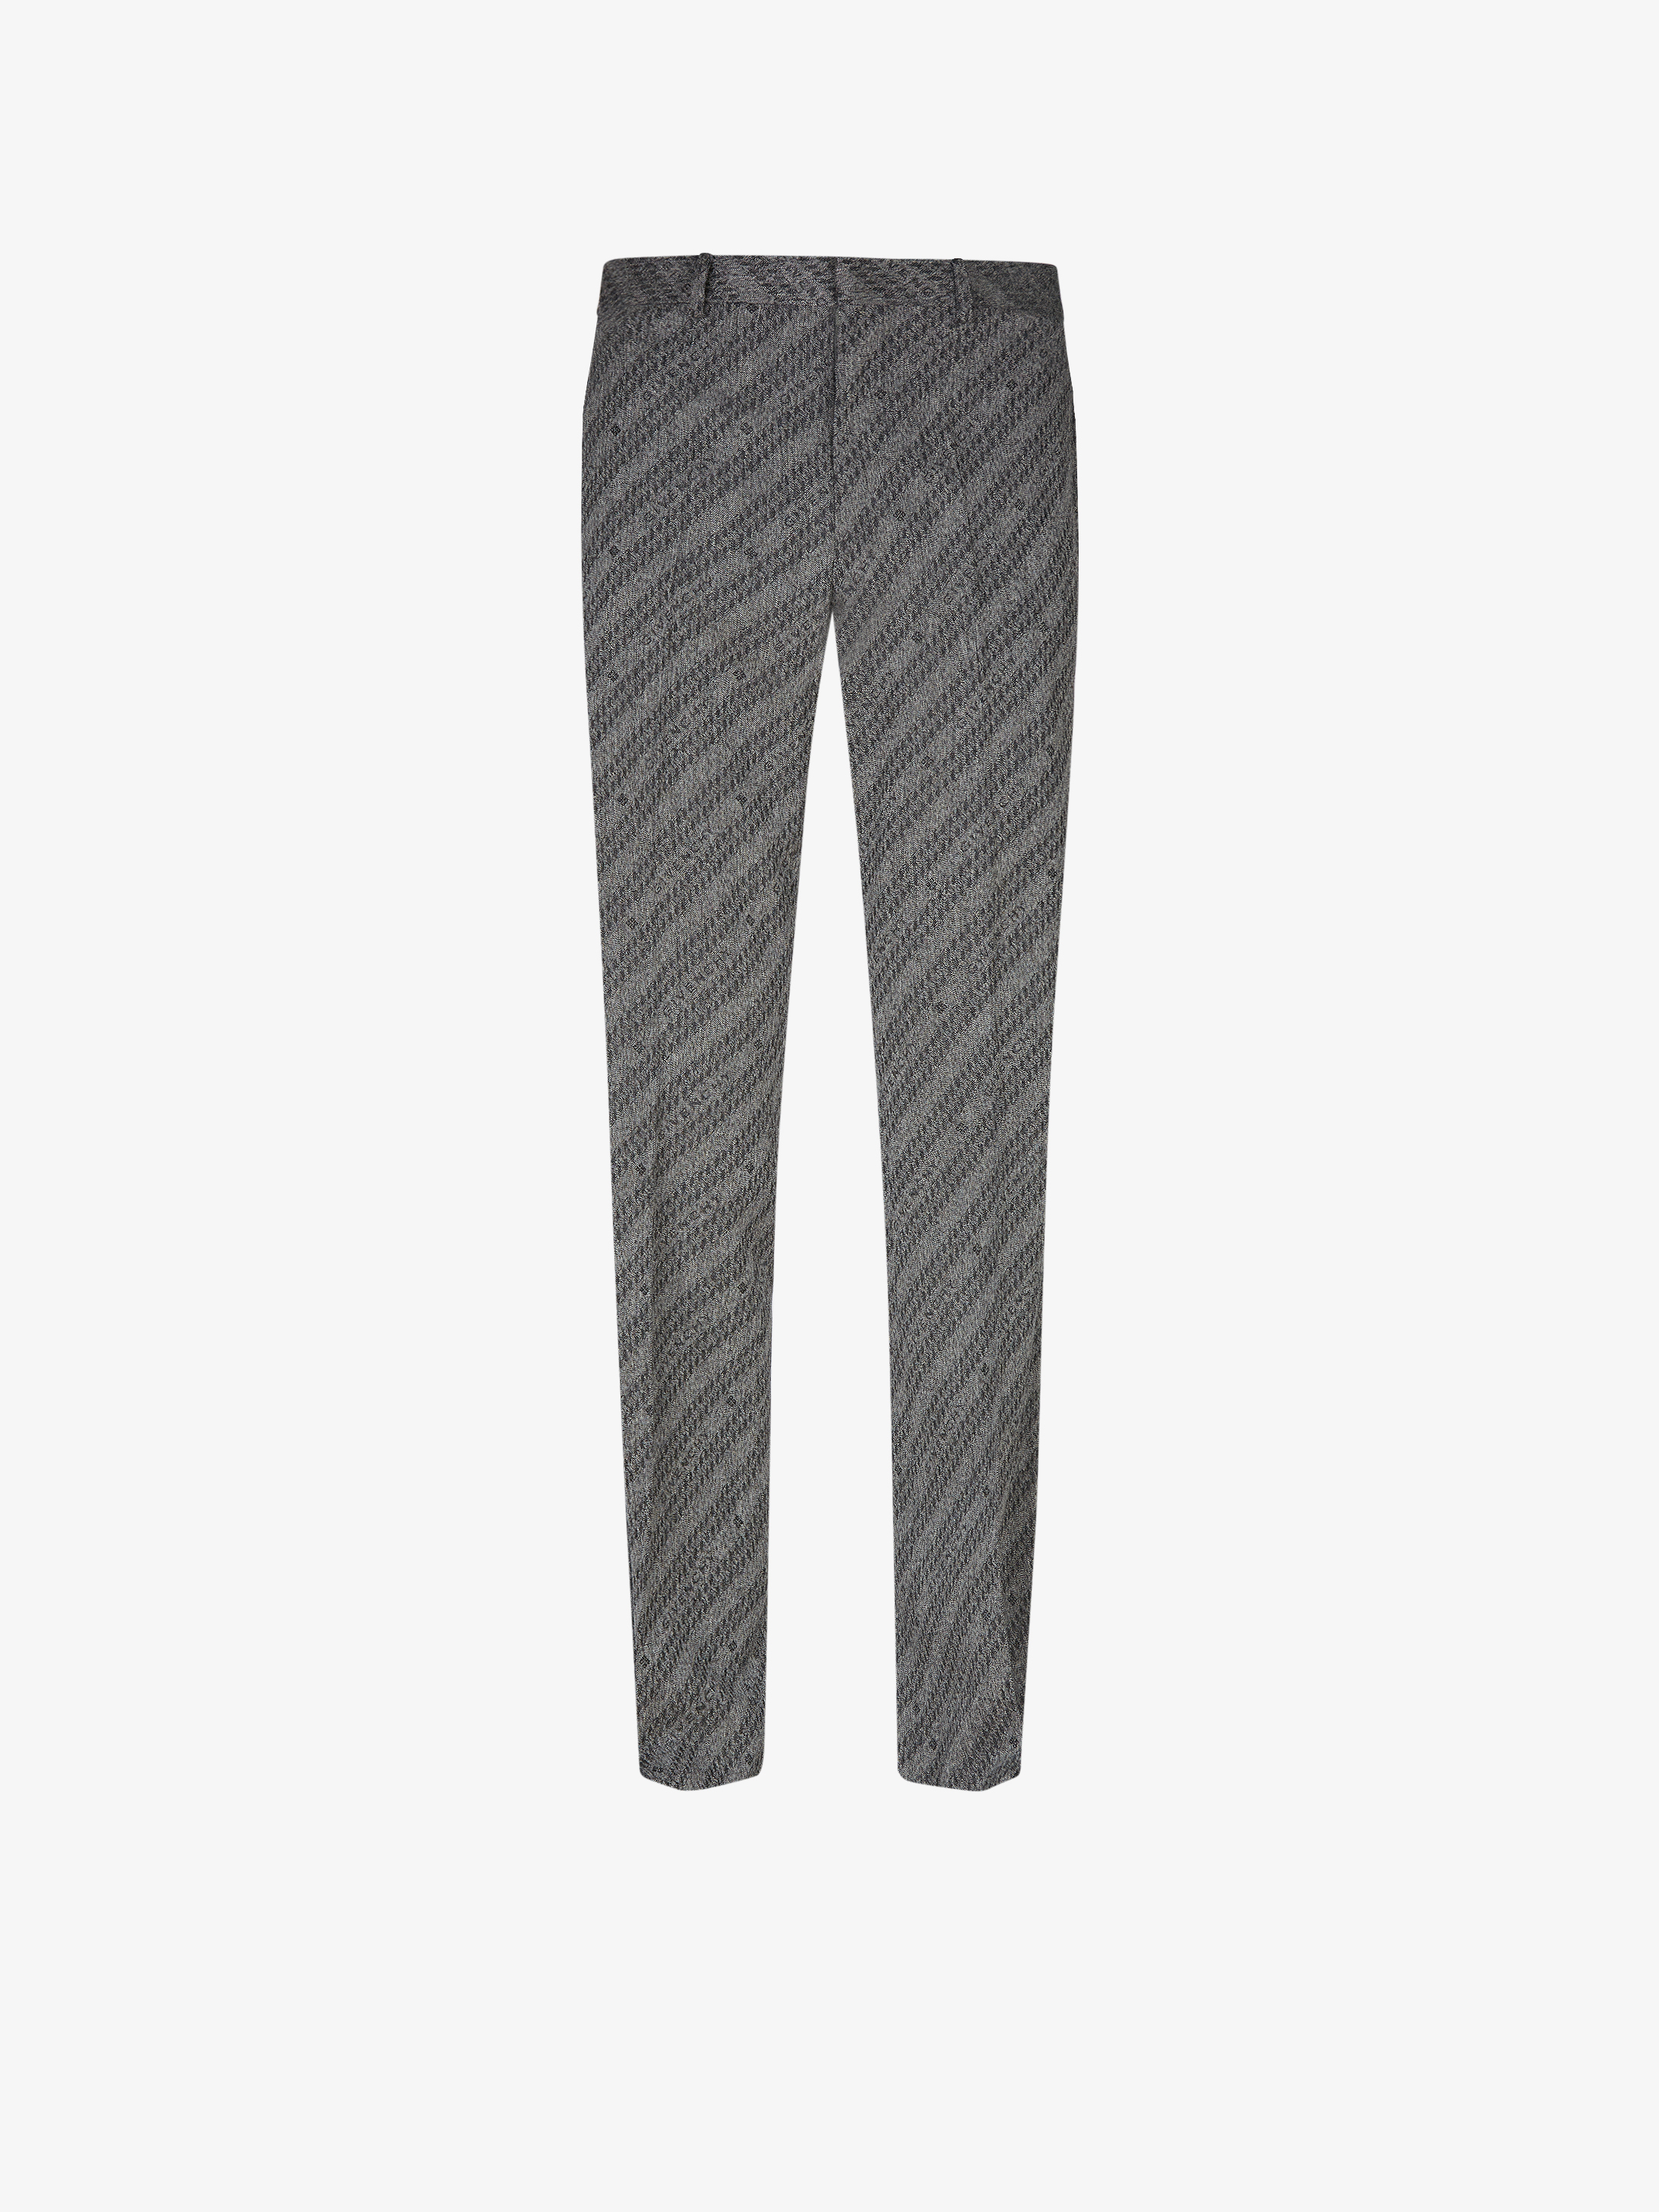 GIVENCHY chain pants in jacquard